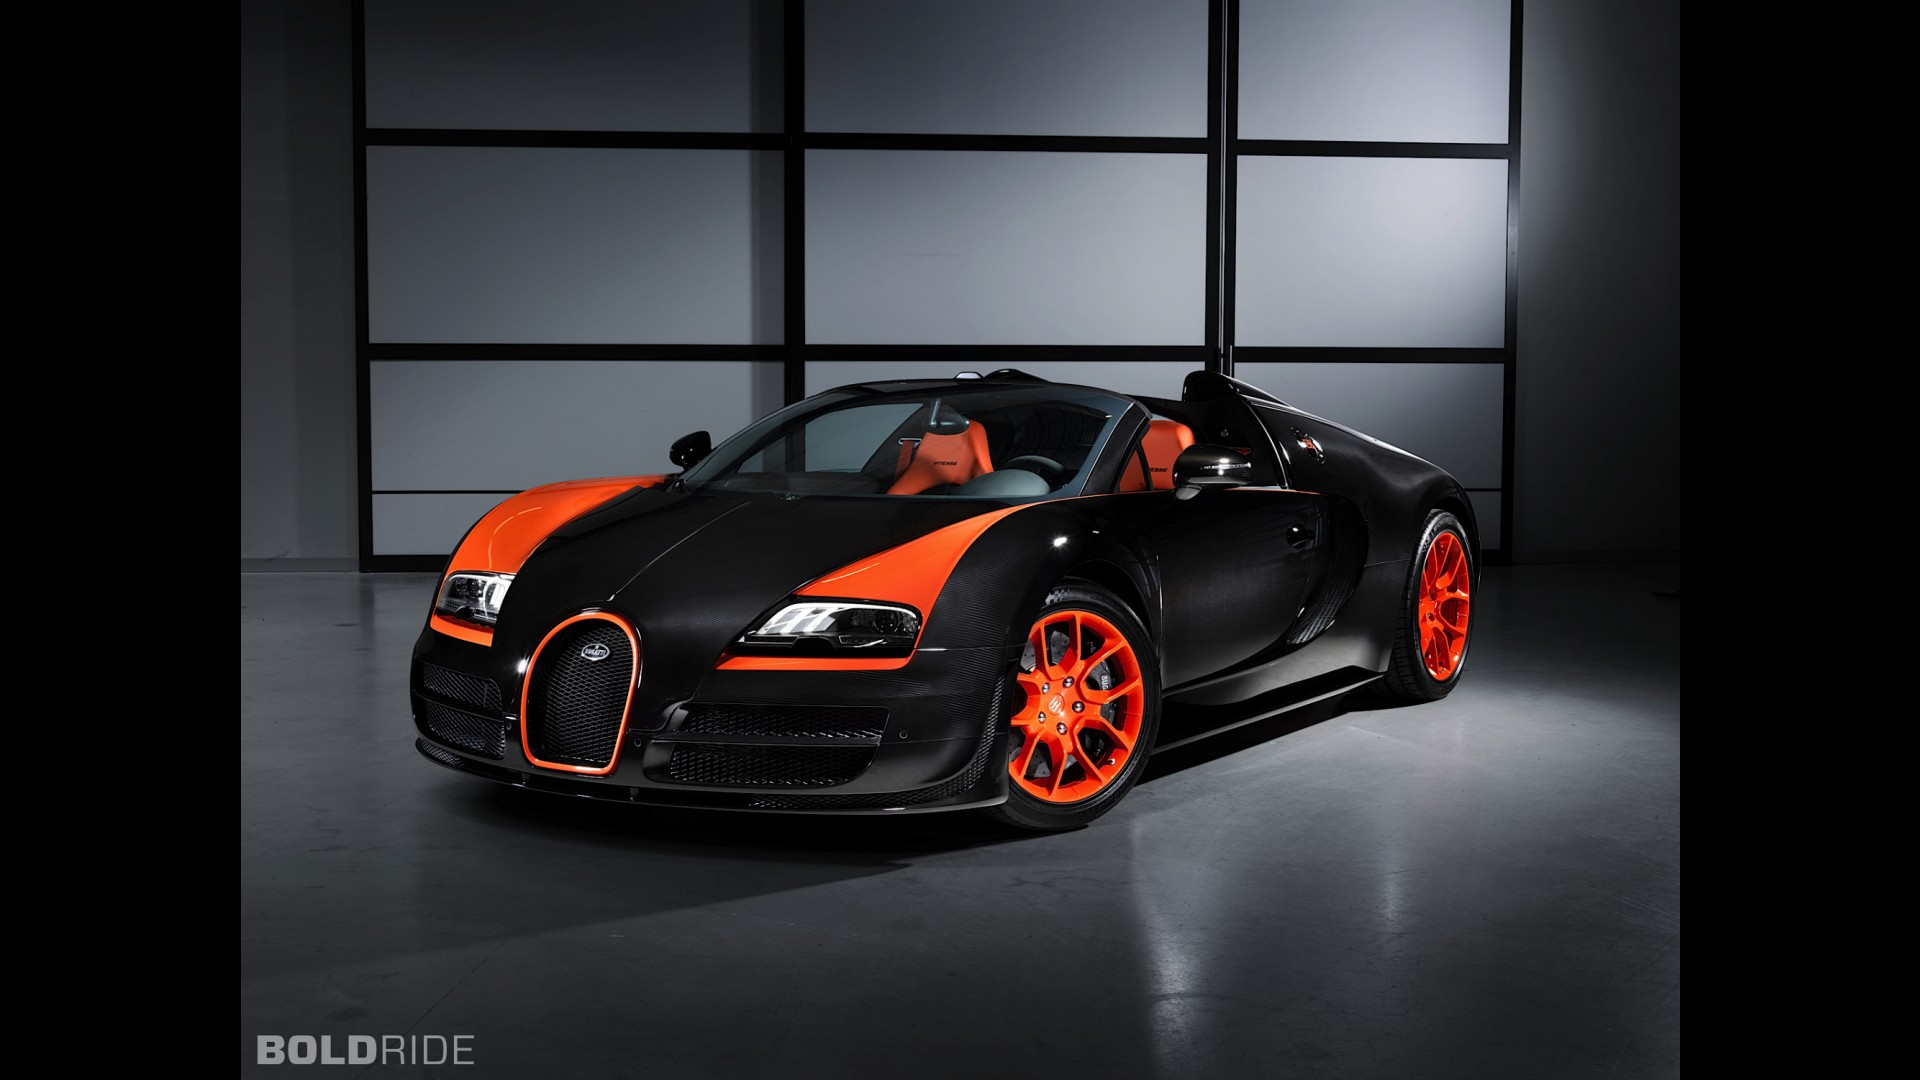 bugatti veyron 16 4 grand sport vitesse world record car. Black Bedroom Furniture Sets. Home Design Ideas